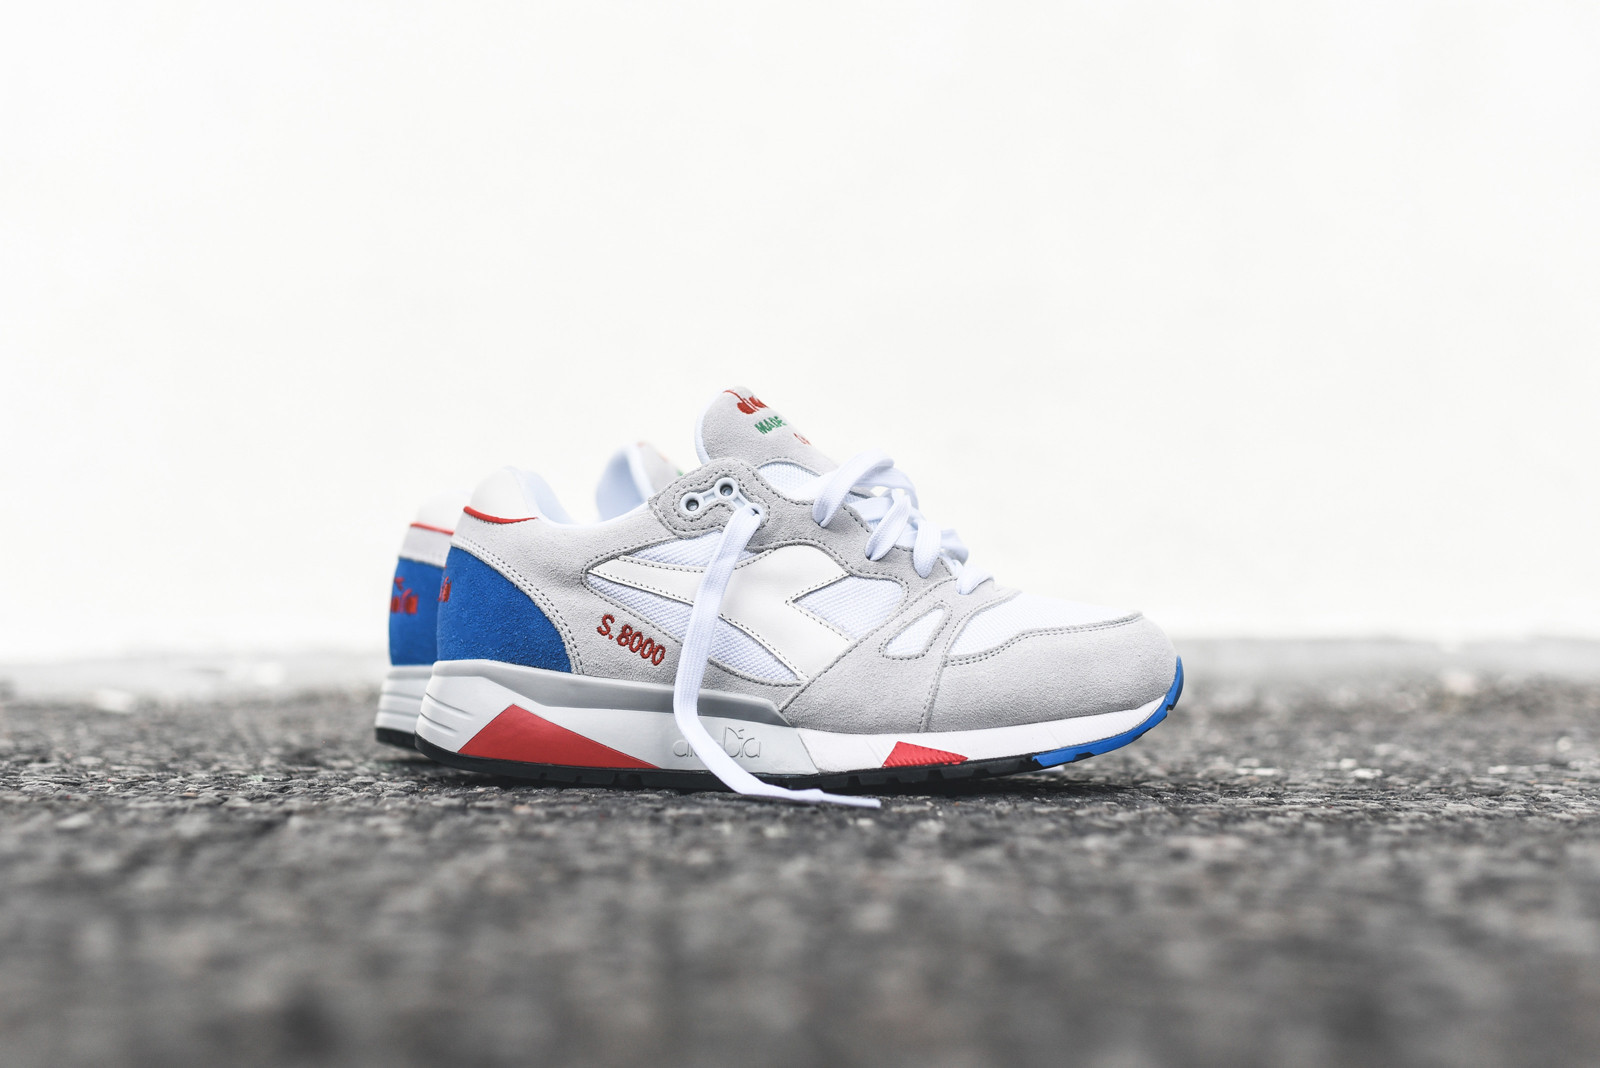 【送料無料】 Diadora S8000 Italia - Light Grey / Micro Blue